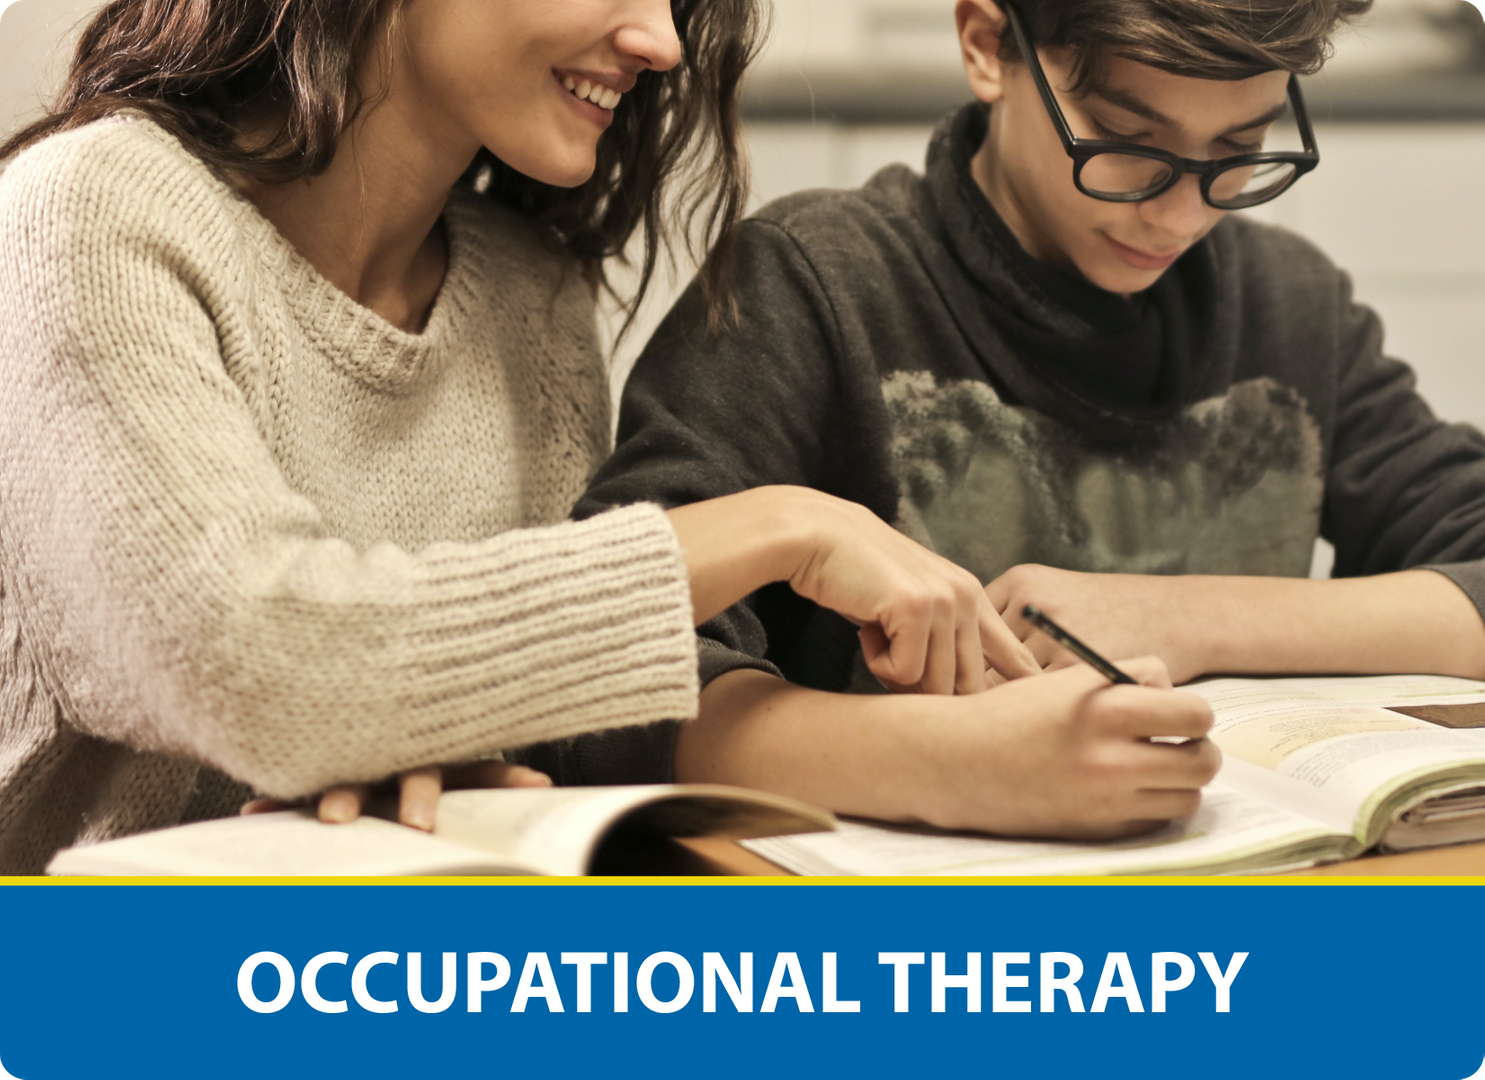 Occupational Therapy: Teacher reading with student